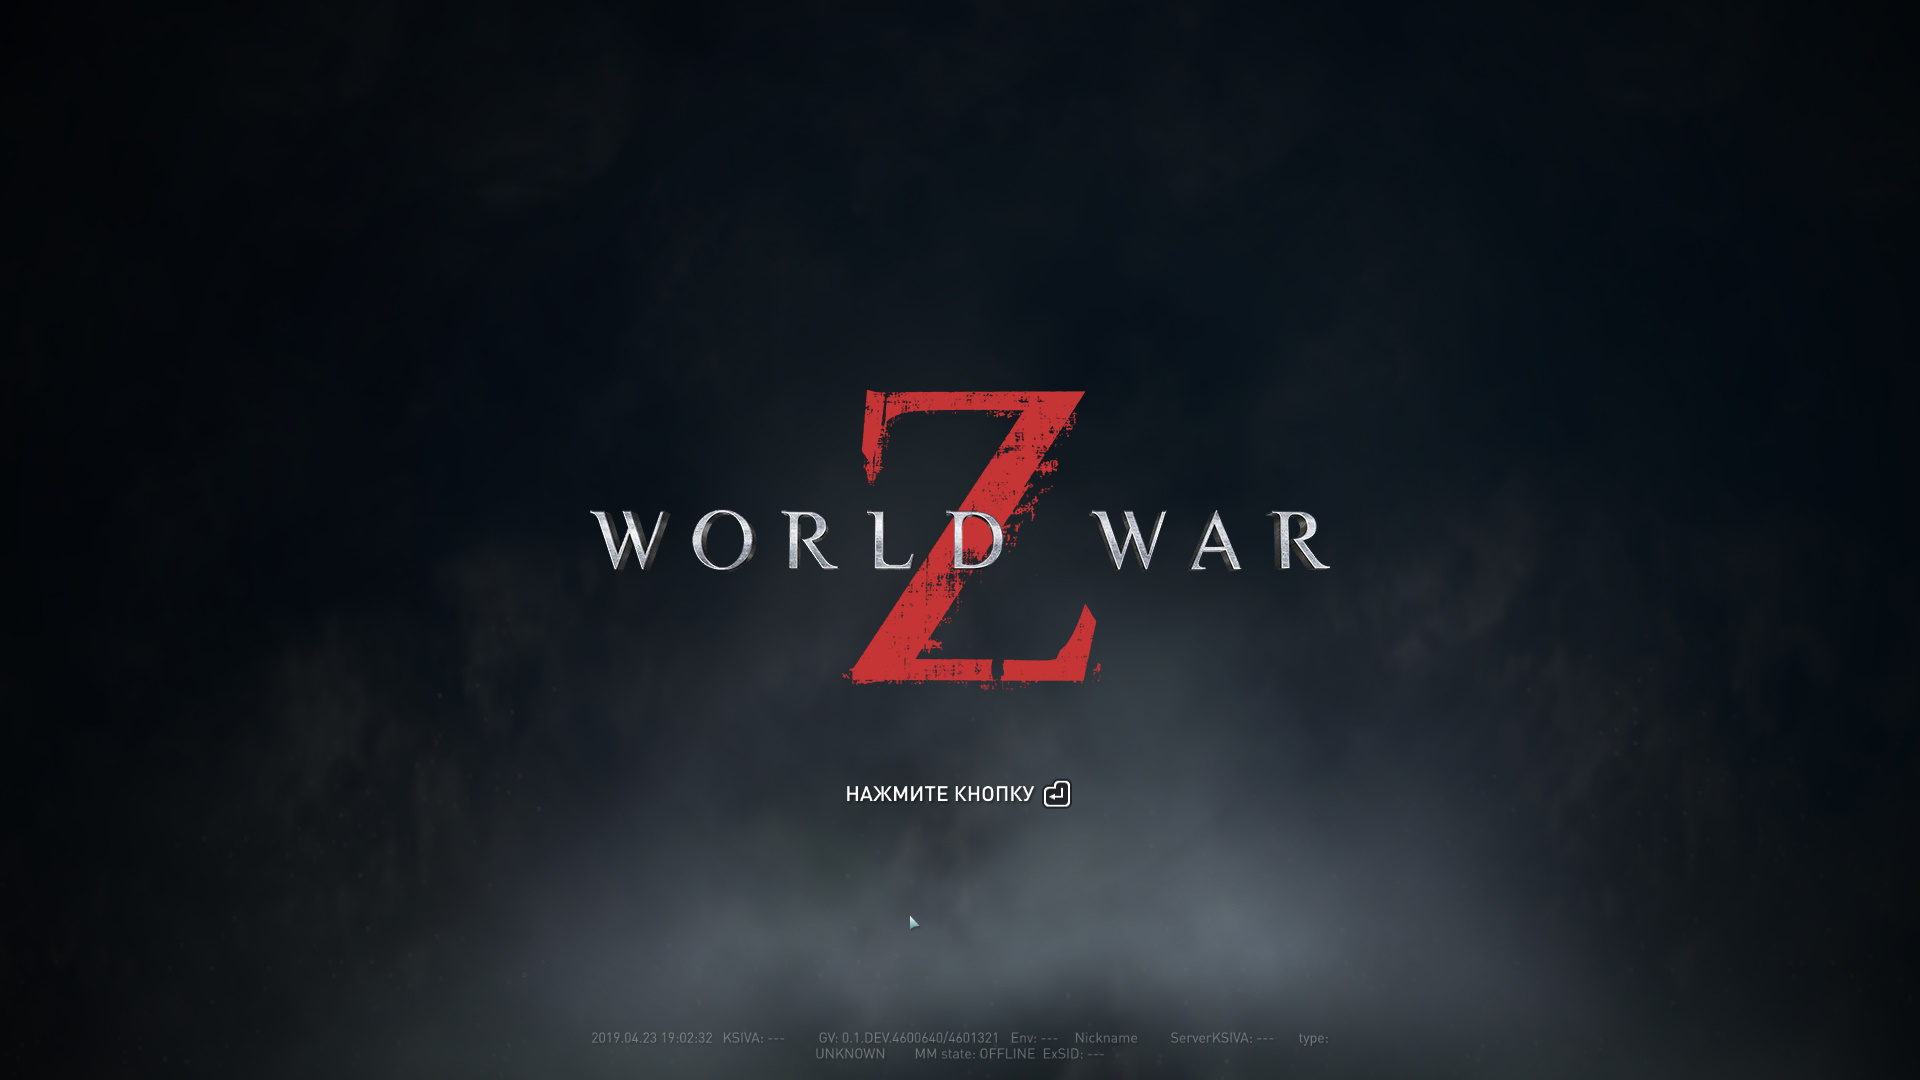 wwzRetailEgs 2019-04-23 19-02-33-136.jpg - World War Z